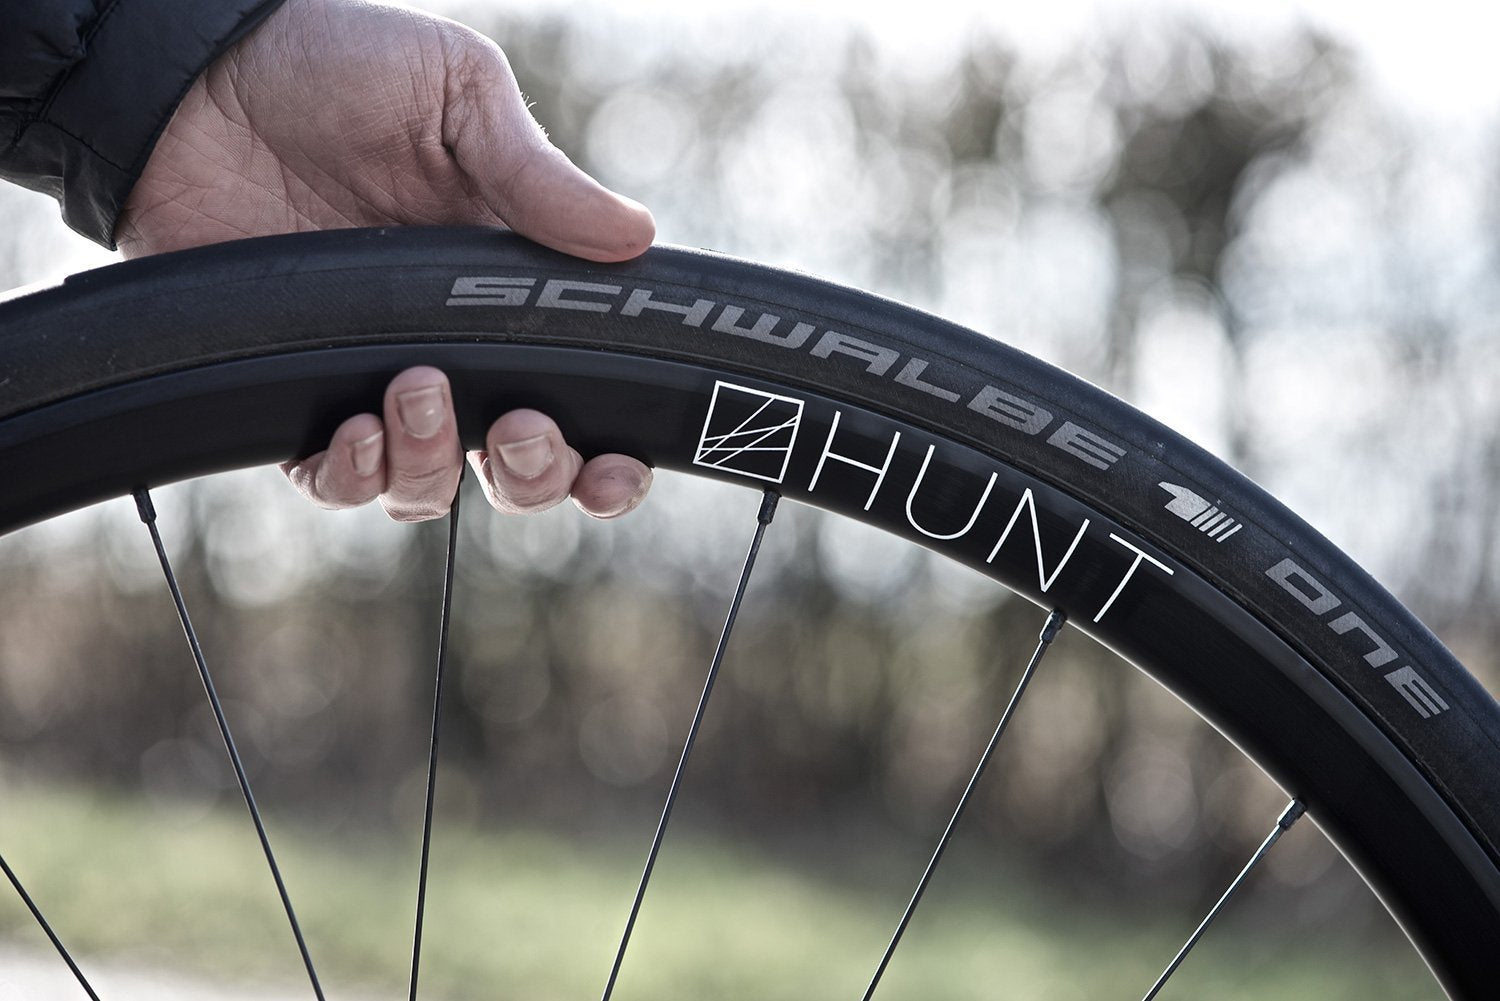 <html><h1>Weight</h1><i>The consequence of the fanatic attention to detail is a resulting 1667 gram wheelset weight. Acceleration and climbing are massively improved over many of the stock wheels supplied on road/CX disc brake bikes and of course hugely important for performance bikes like the Mason Cycles range.</i></html>